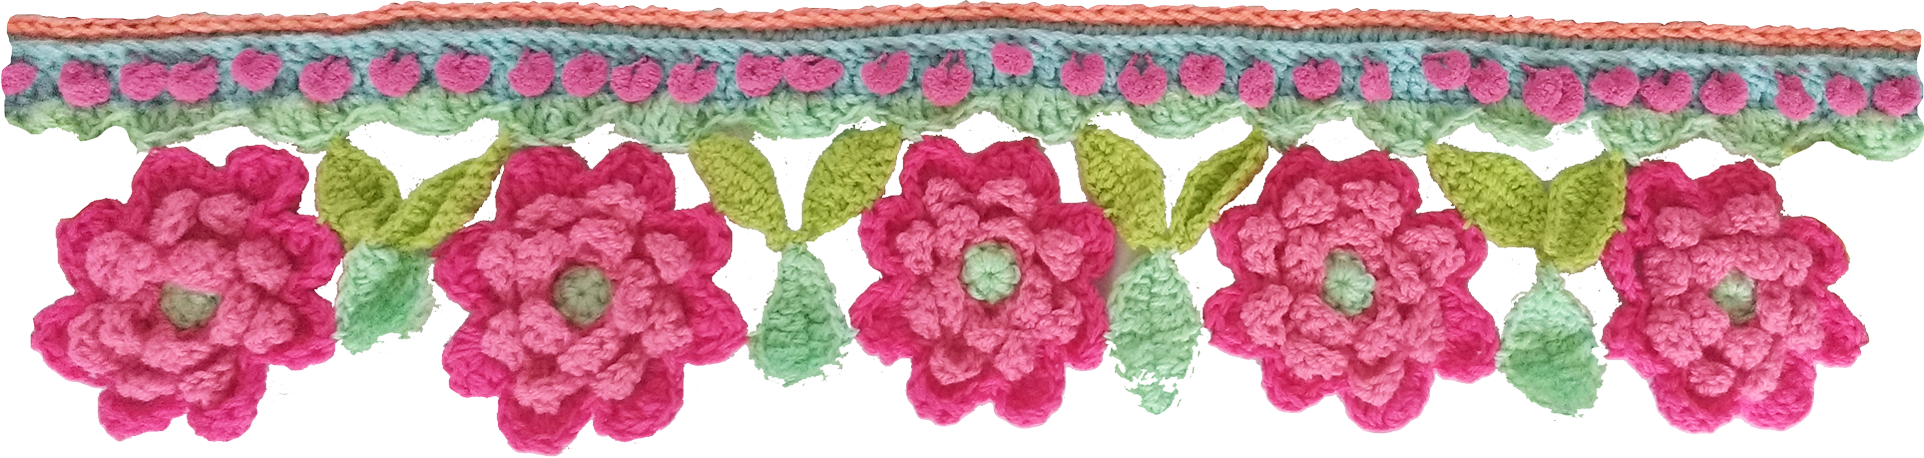 Crochet Workshop Shawls Wraps And Bags Adindas World Official